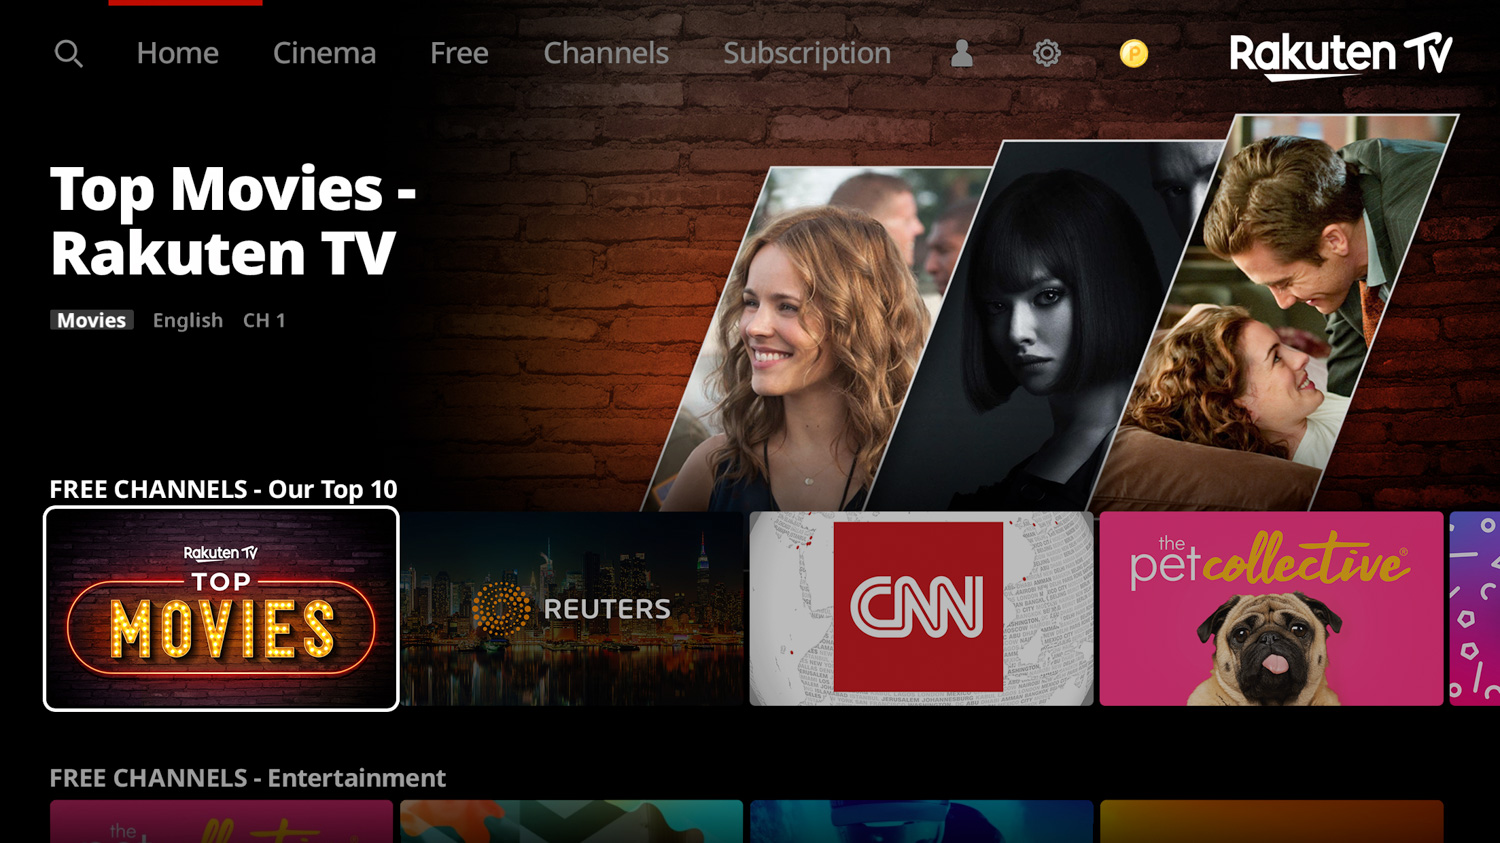 Rakuten TV has launched 90 new linear TV channels, curating everything from blockbuster thrillers to regional news ― all for the low, low price of free.